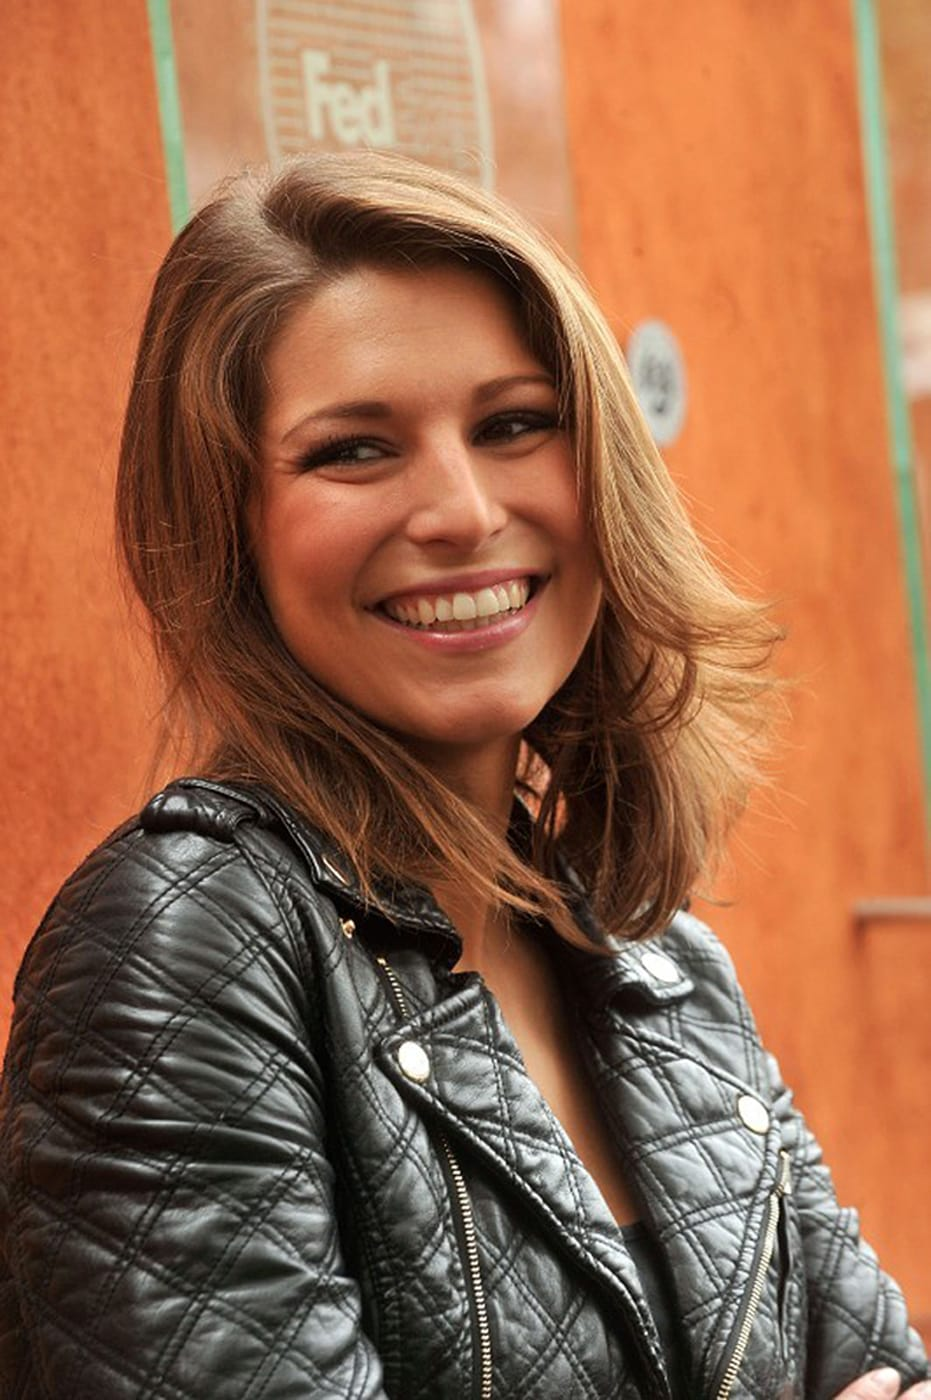 Laury Thilleman naked (39 photo), Topless, Cleavage, Selfie, swimsuit 2006